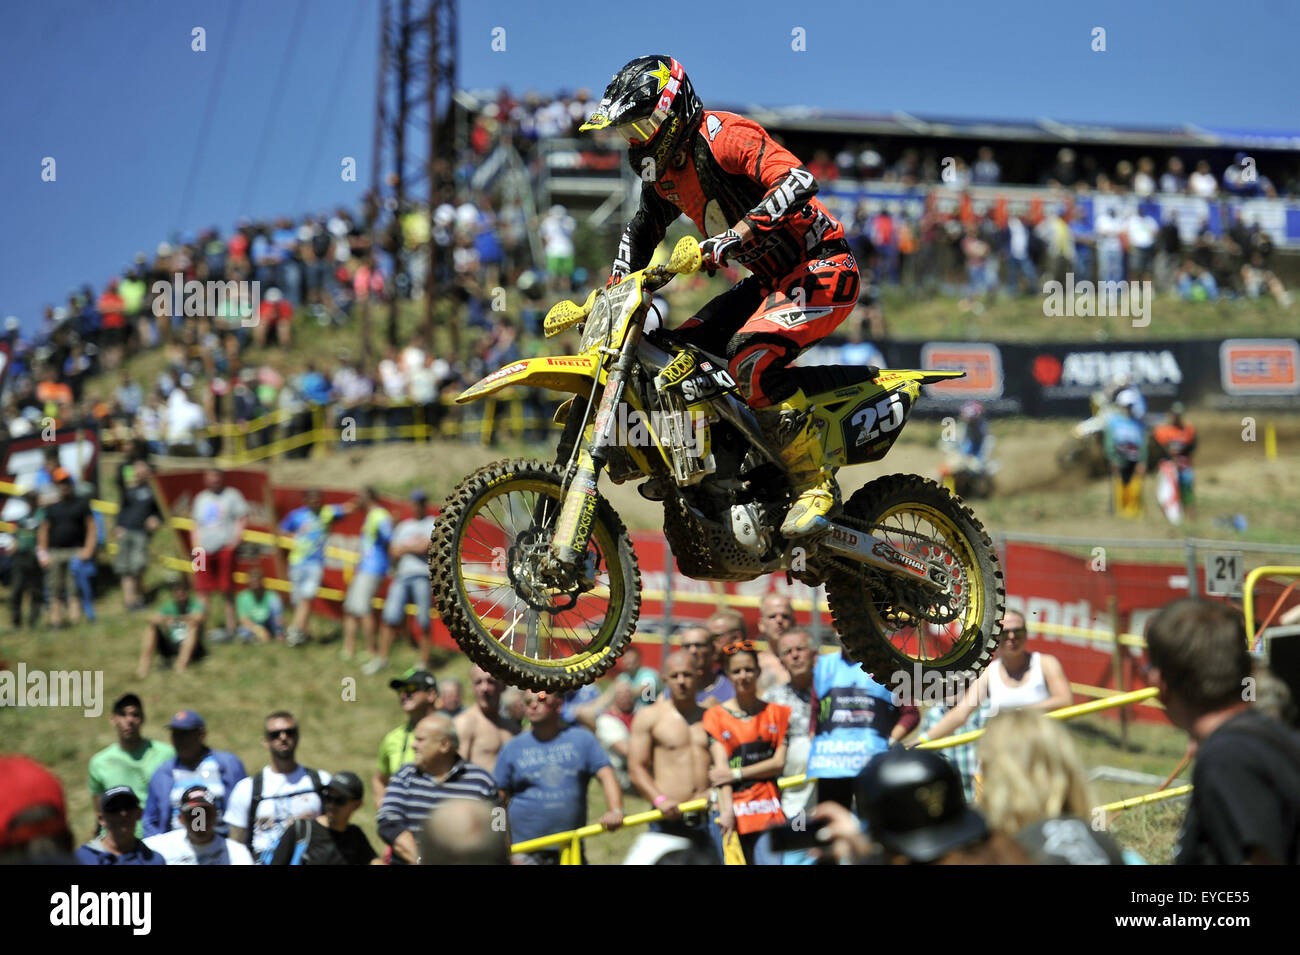 Loket, Czech Republic. 26th July, 2015. Clement Desalle from Belgium competes during Motocross FIM world championship Stock Photo